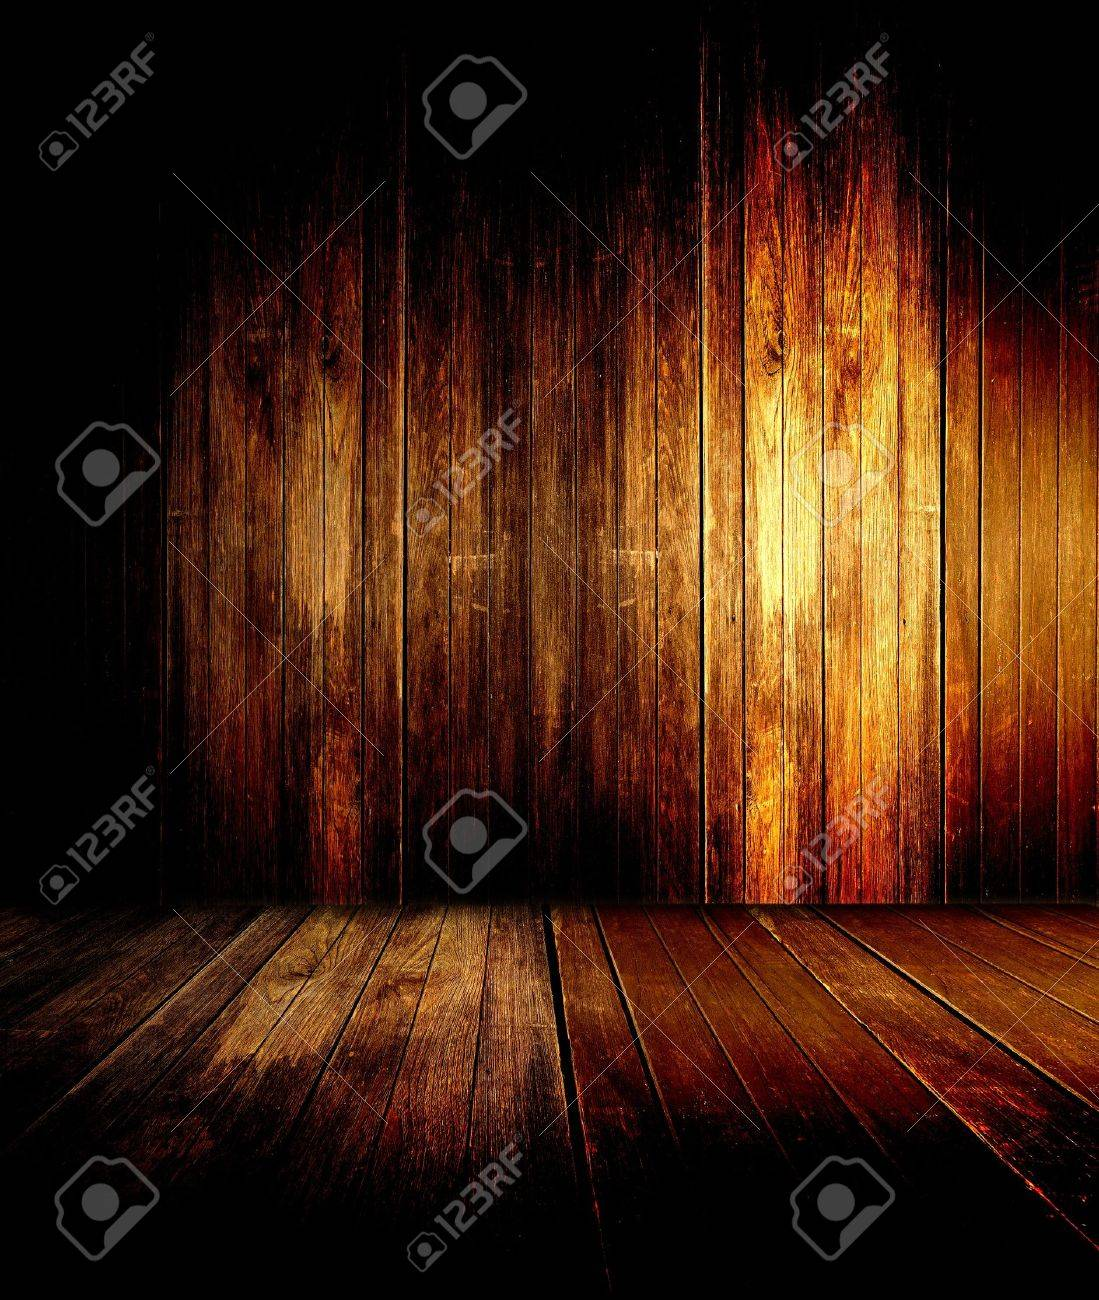 abstract the old wood floor for background - 16398282